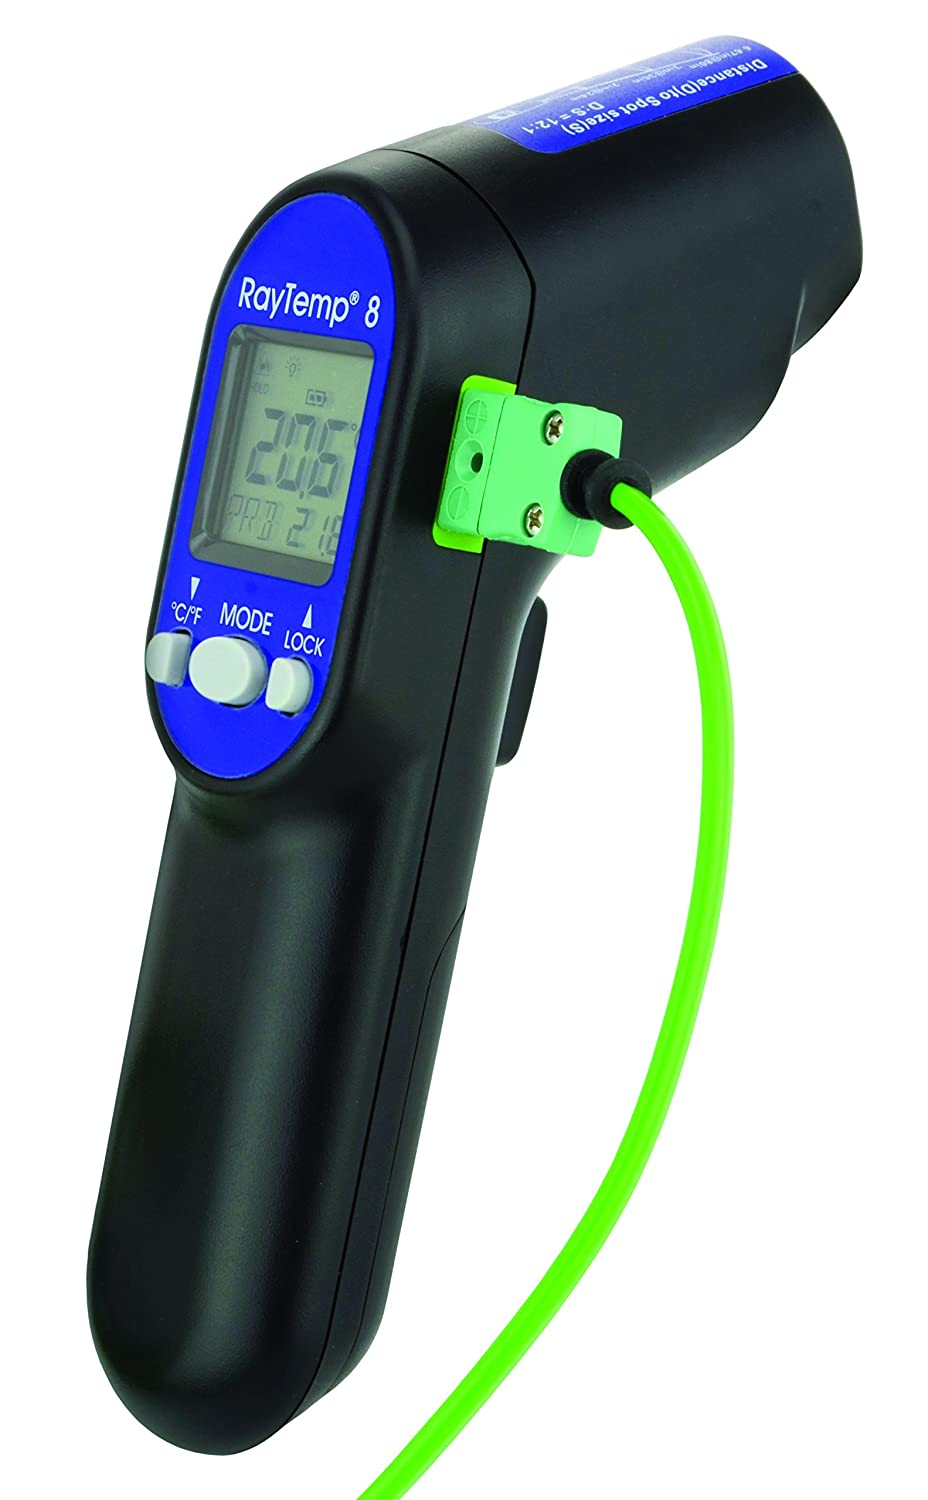 RayTemp 8 infrared thermometer with type K thermocouple socket ETI Ltd 814-045